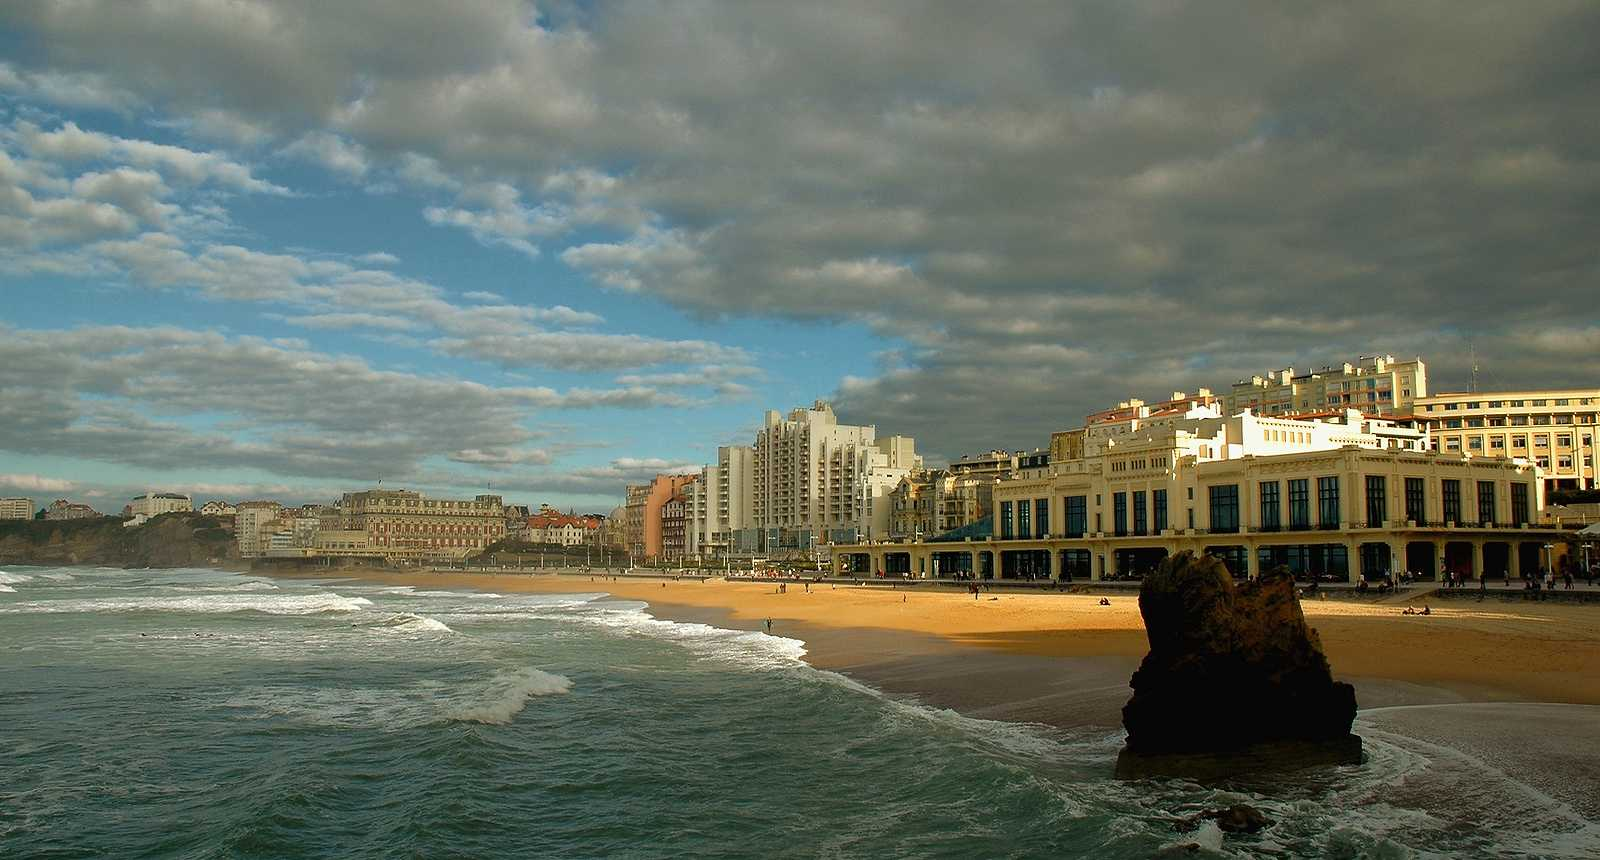 Office du tourisme de biarritz 64200 - Office de tourisme biarritz location ...